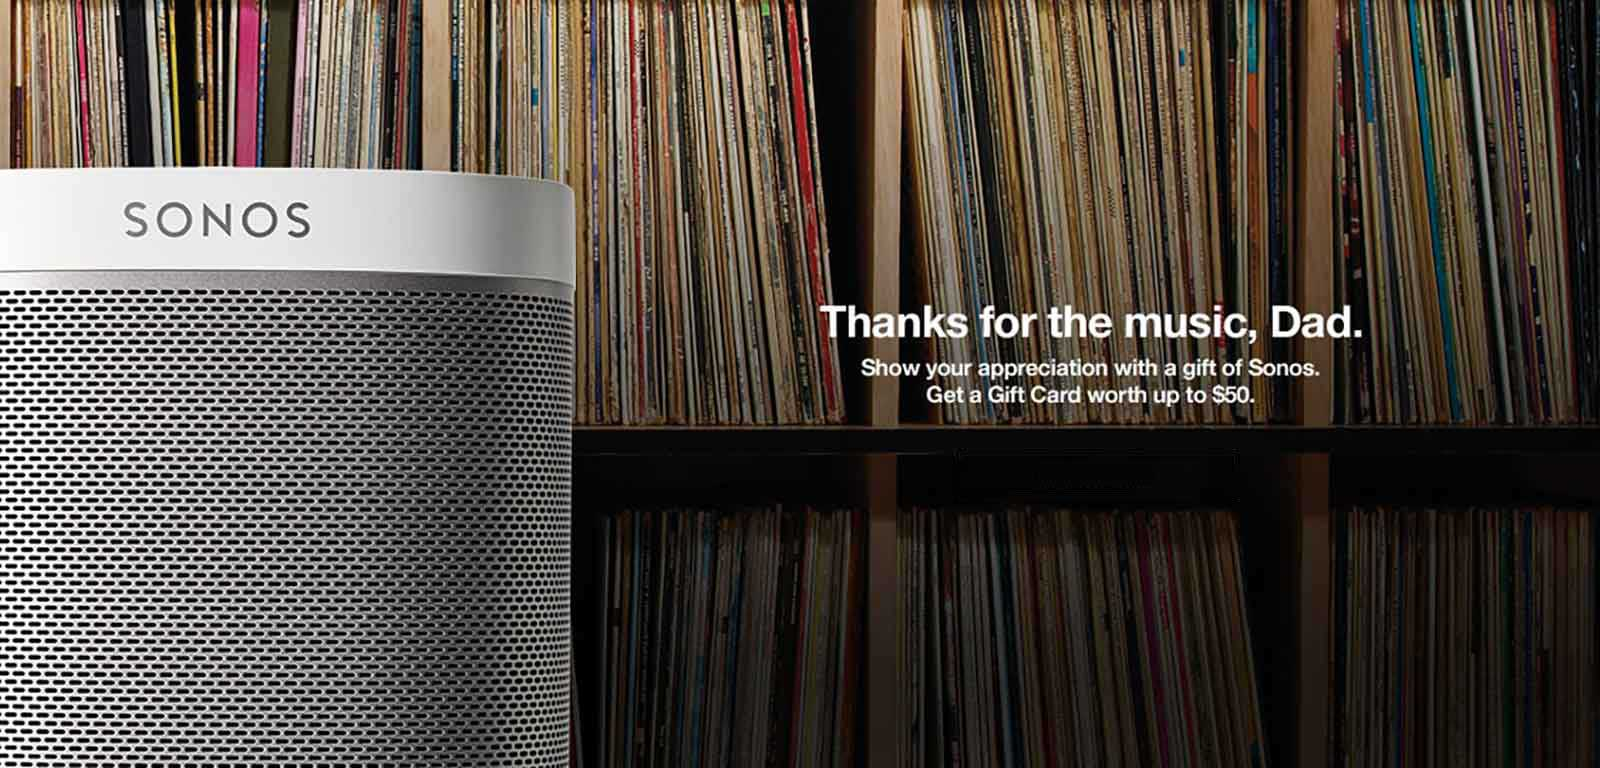 Thanks for the music, dad. Show your appreciation with a gift of Sonos. Get a gift card worth up to $50.